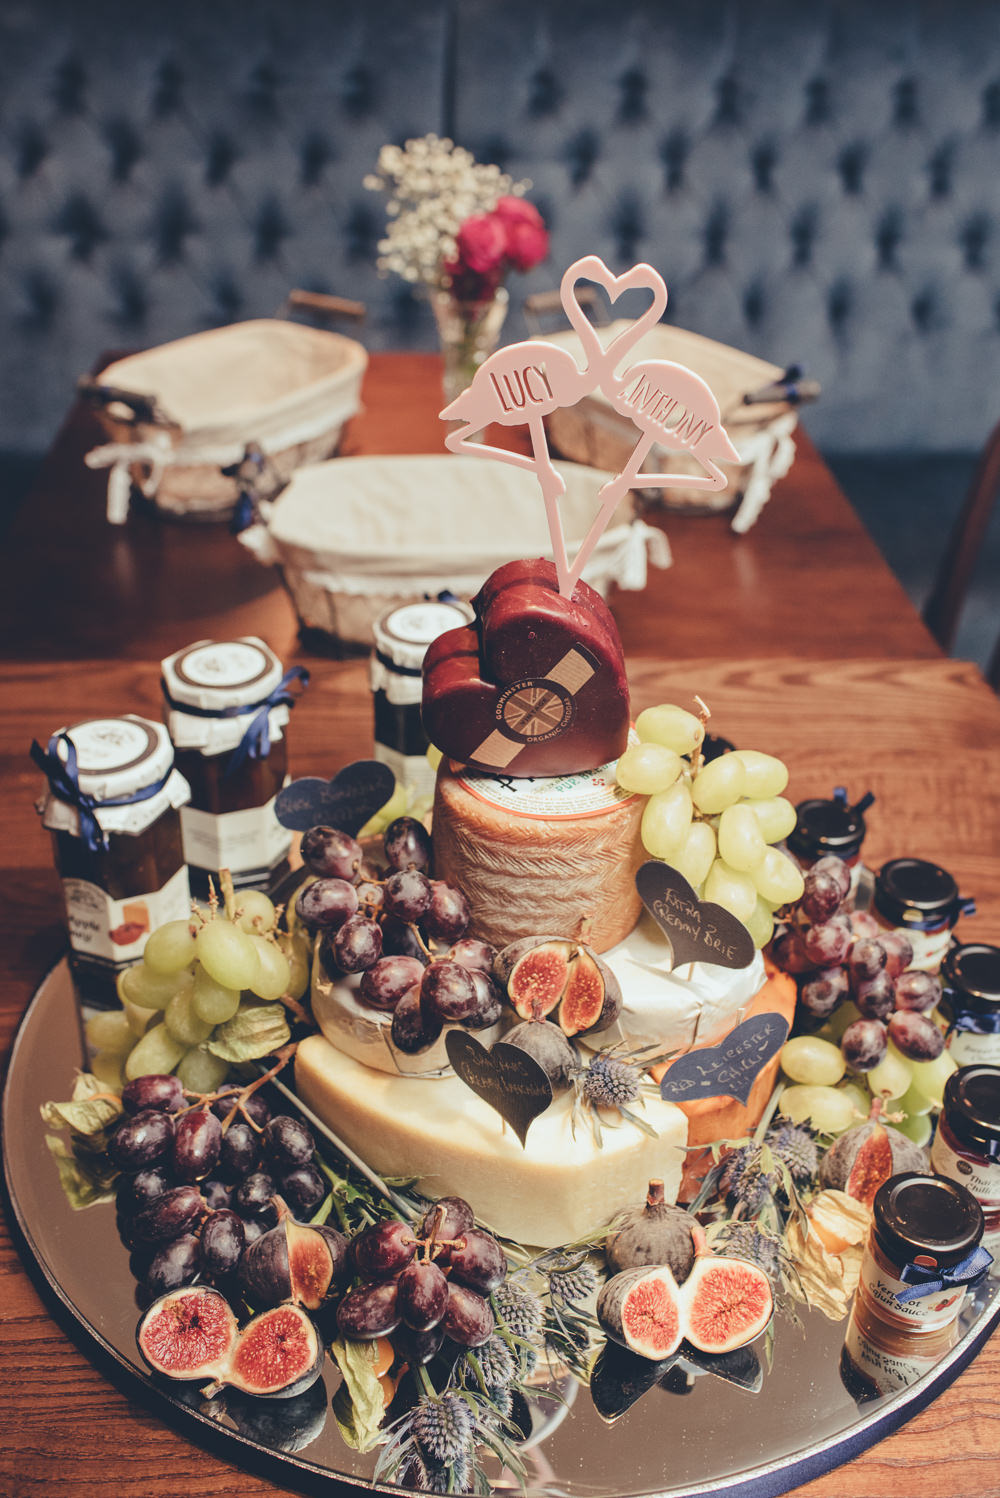 Cheese Tiered Cake Display Chutney Grapes Board 60 Hope Street Wedding Lisa Howard Photography